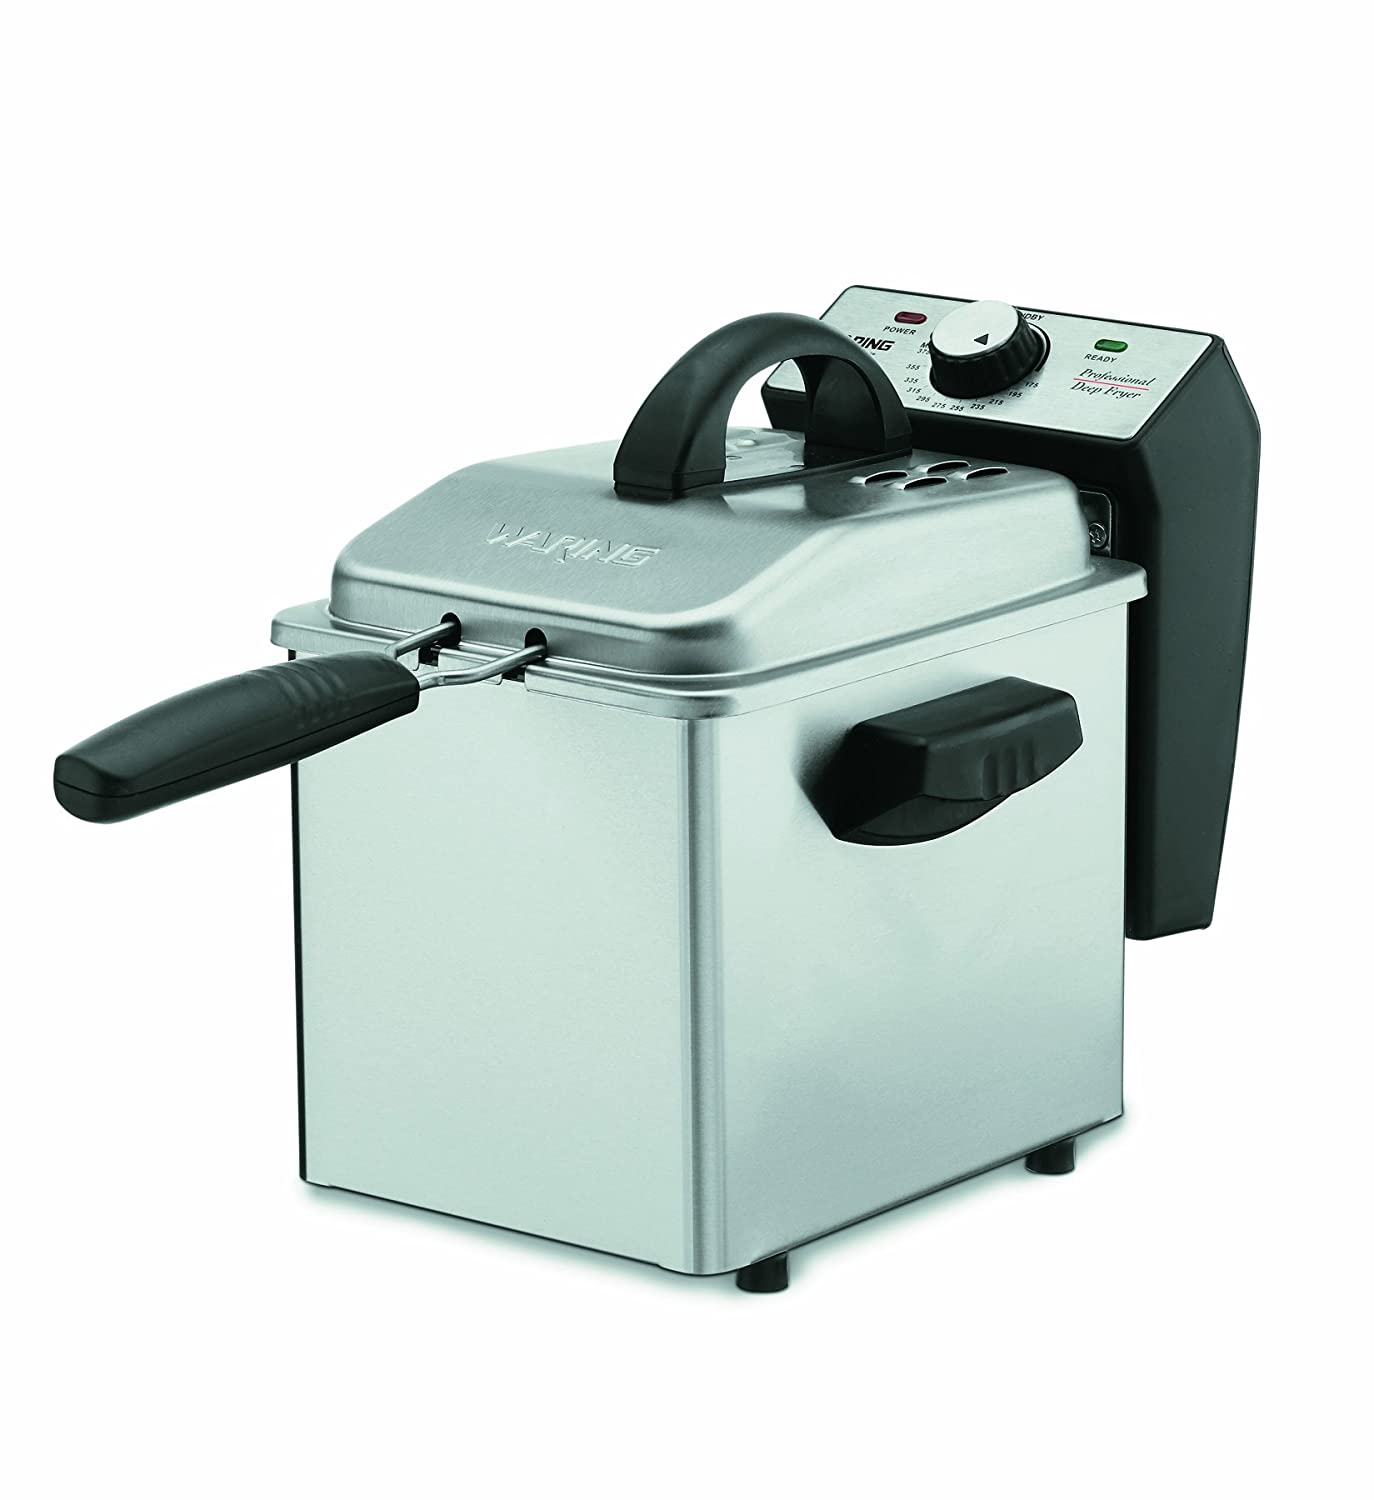 Best Home Deep Fat Fryer